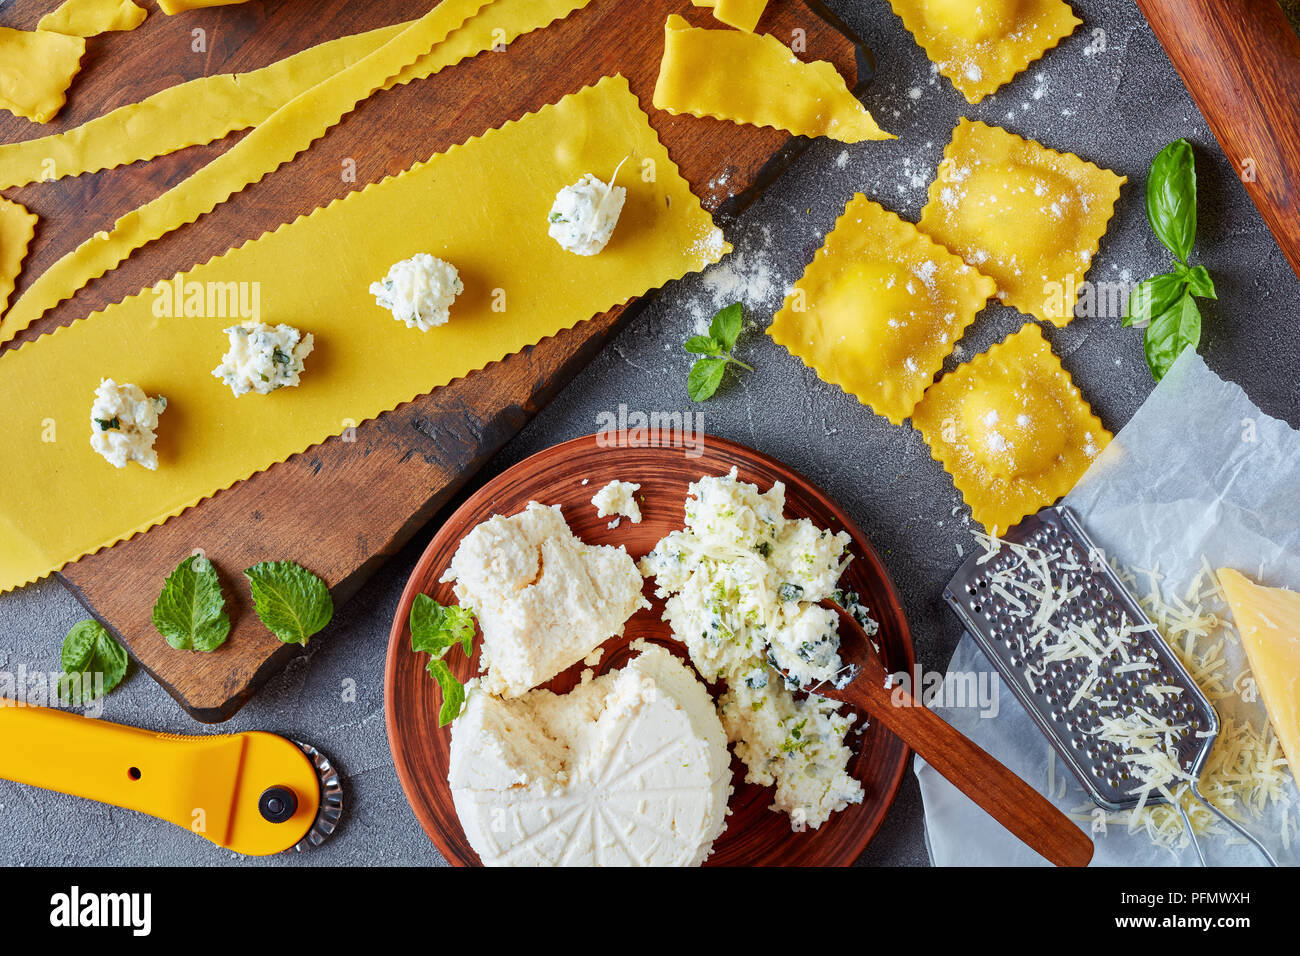 cooking up delicious ravioli with ricotta cheese filling mixed with finely chopped mint and basil leaves on a concrete kitchen table with ingredients, - Stock Image